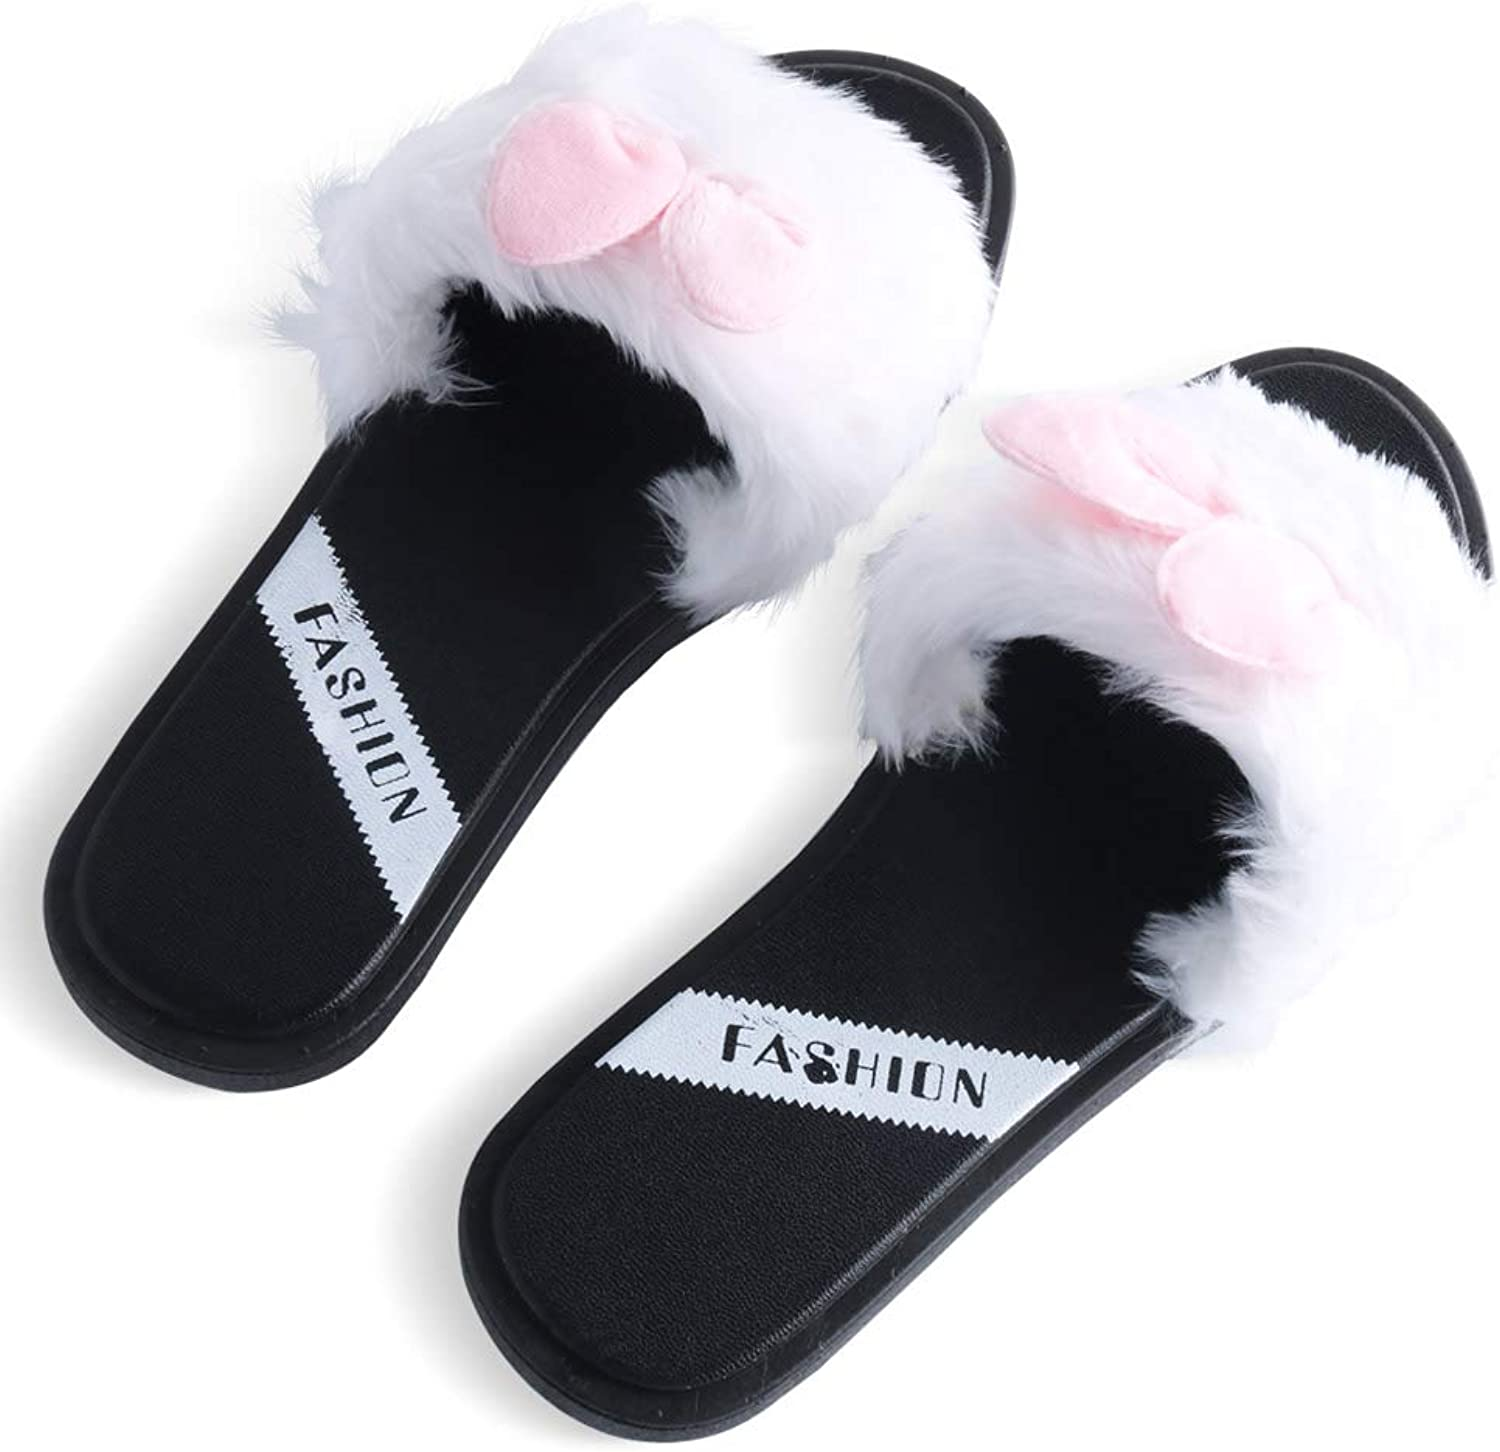 Erpai Women Slippers Summer Indoor Home Outdoor Fashion Anti-Slip shoes Black